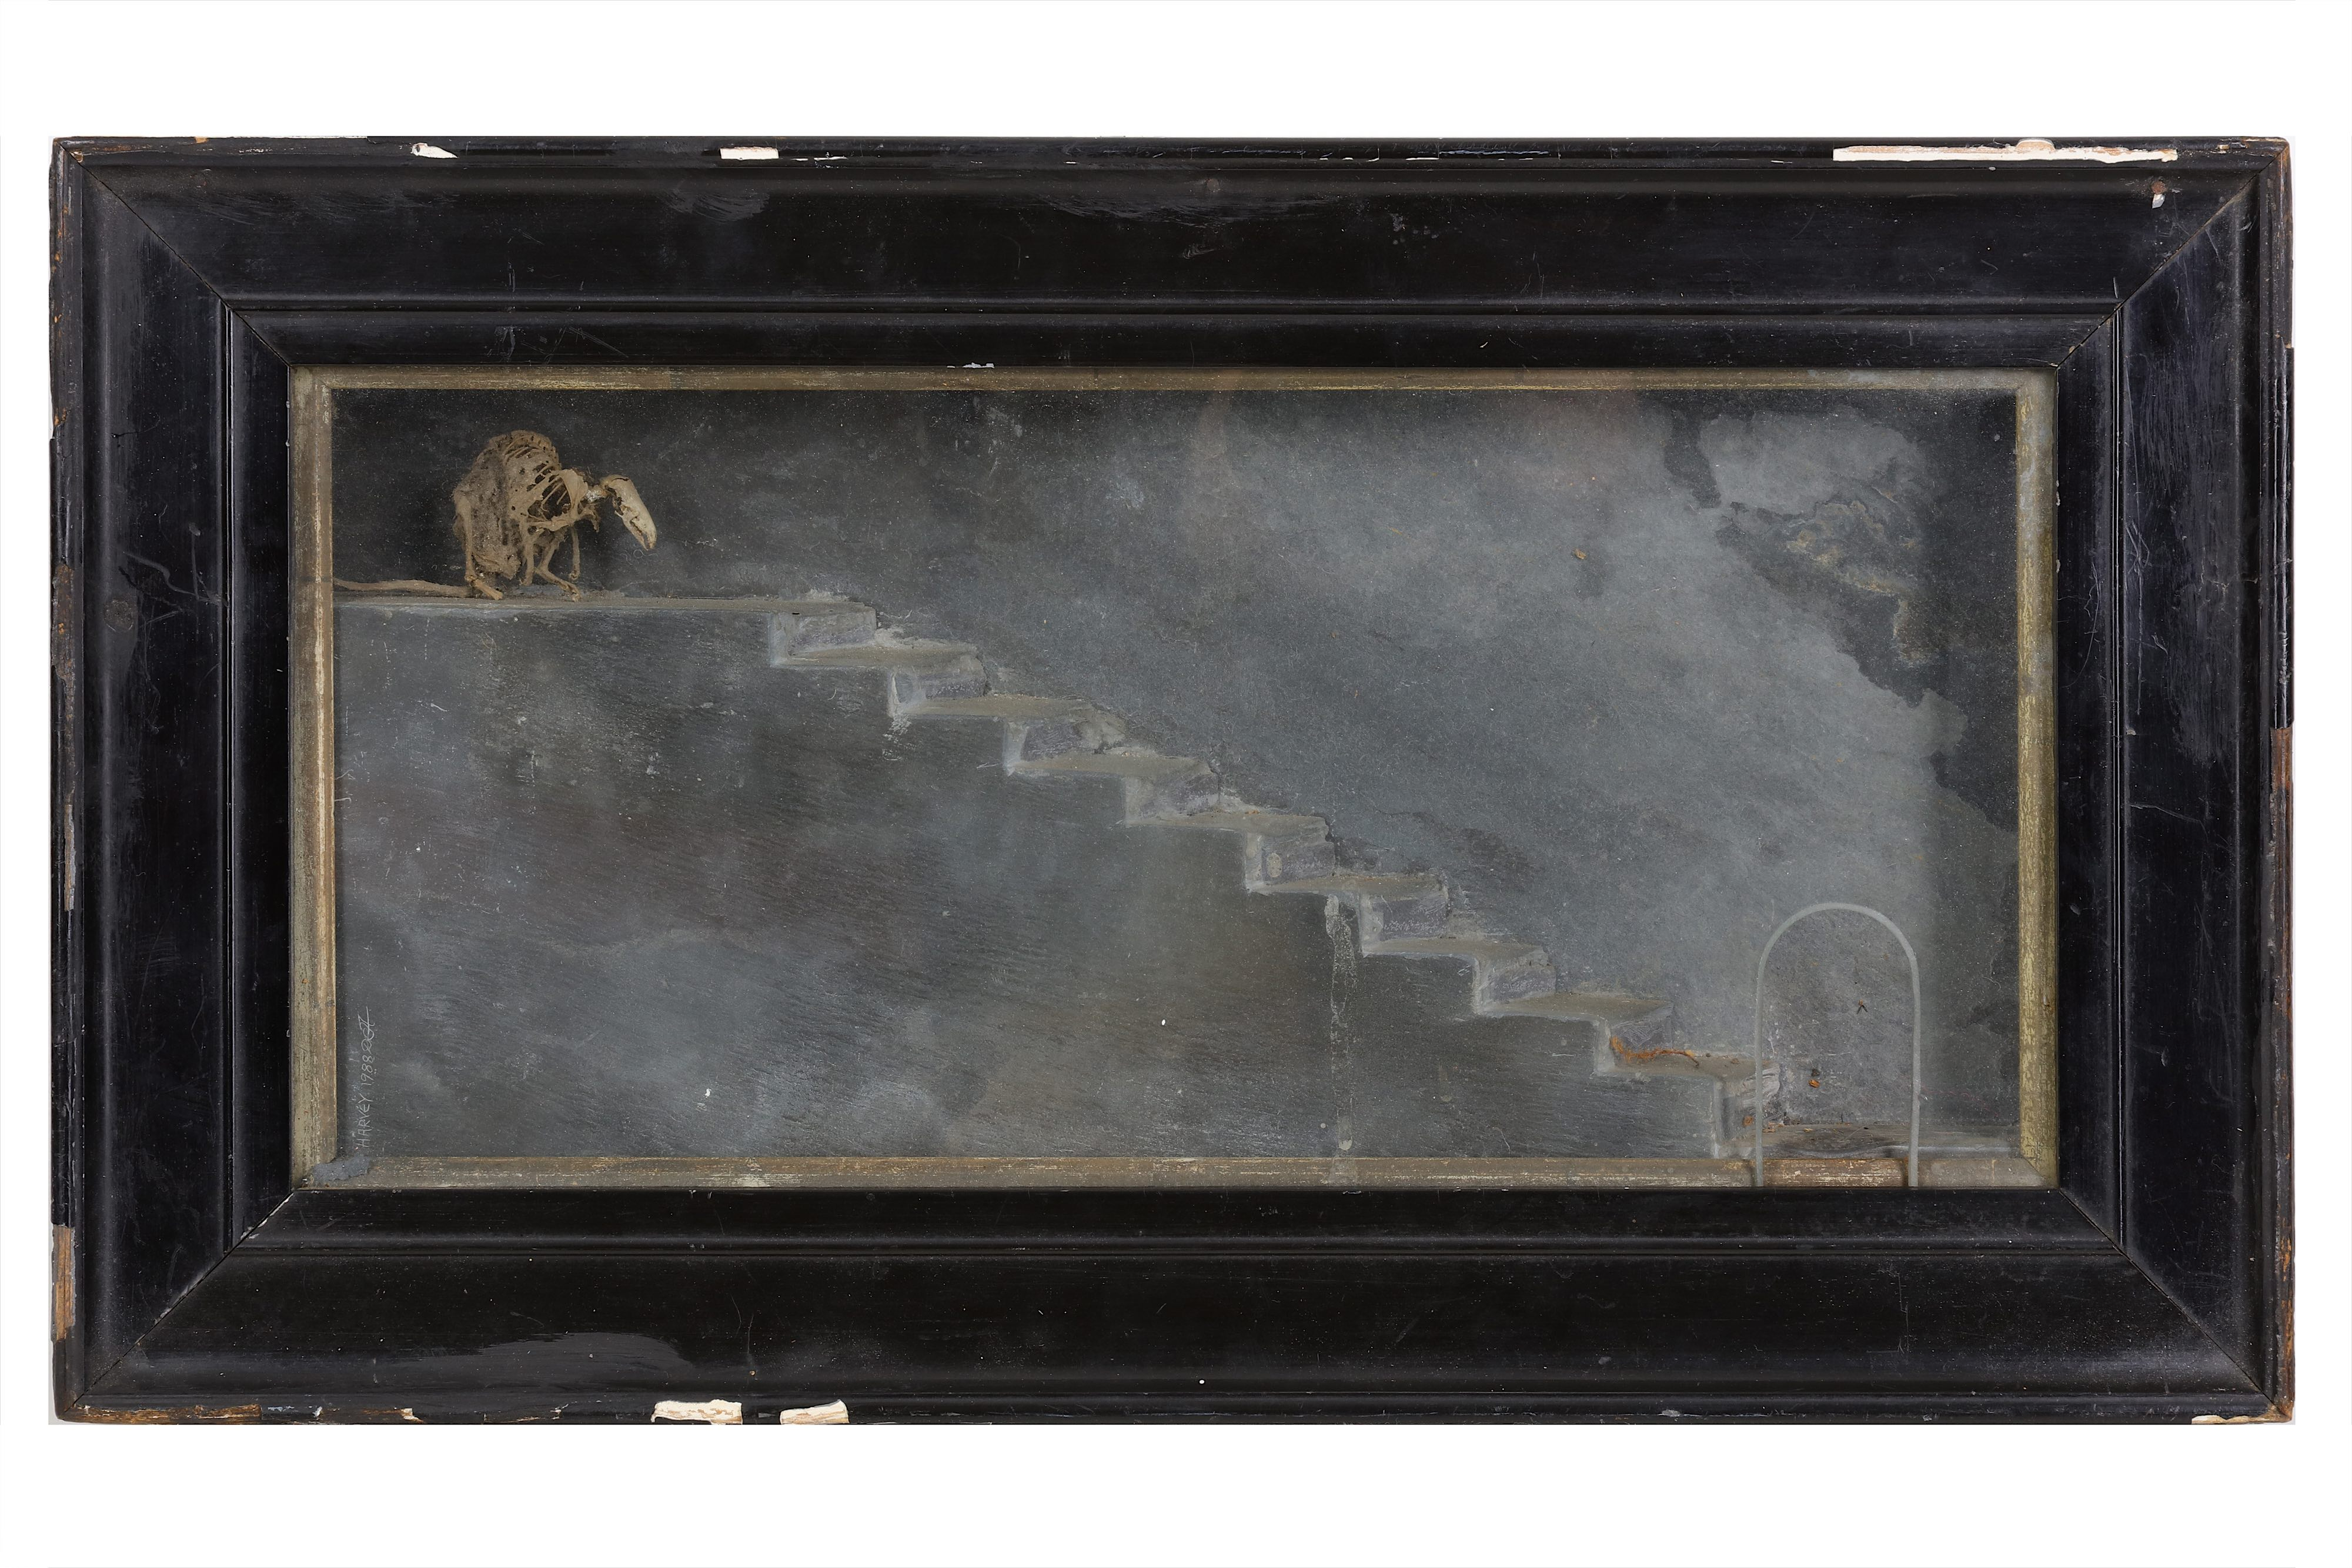 TWO GOTHIC STYLE SLATE AND BONE DIORAMAS - Image 2 of 5